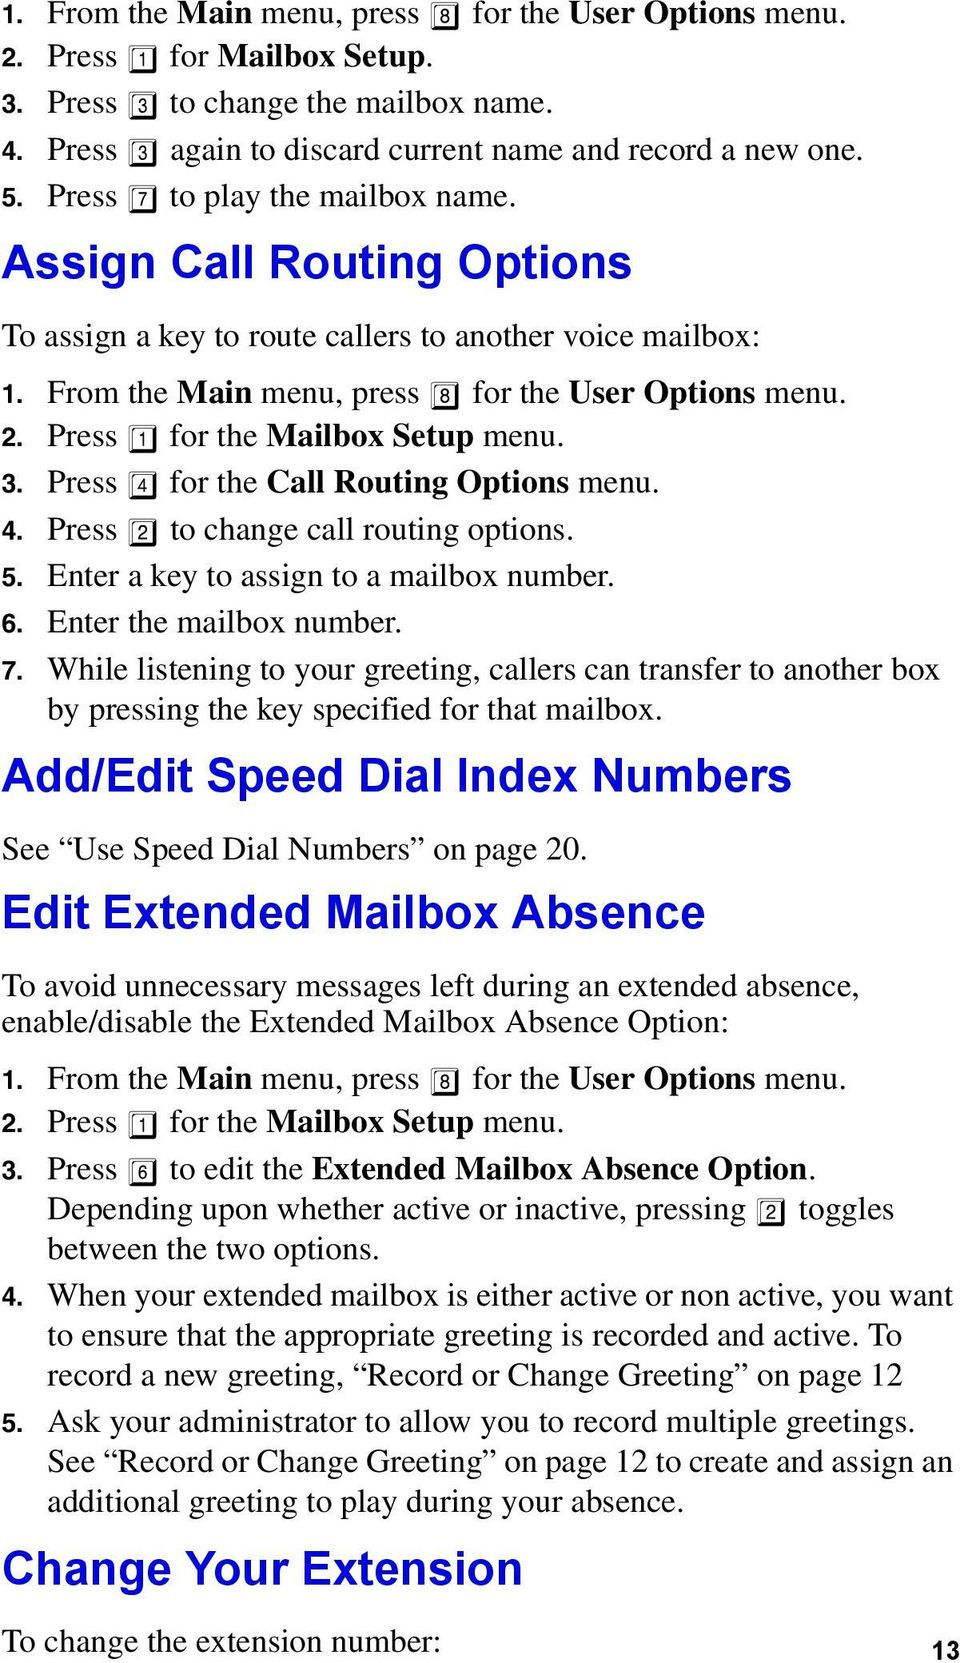 Press 1 for the Mailbox Setup menu. 3. Press 4 for the Call Routing Options menu. 4. Press 2 to change call routing options. 5. Enter a key to assign to a mailbox number. 6. Enter the mailbox number.